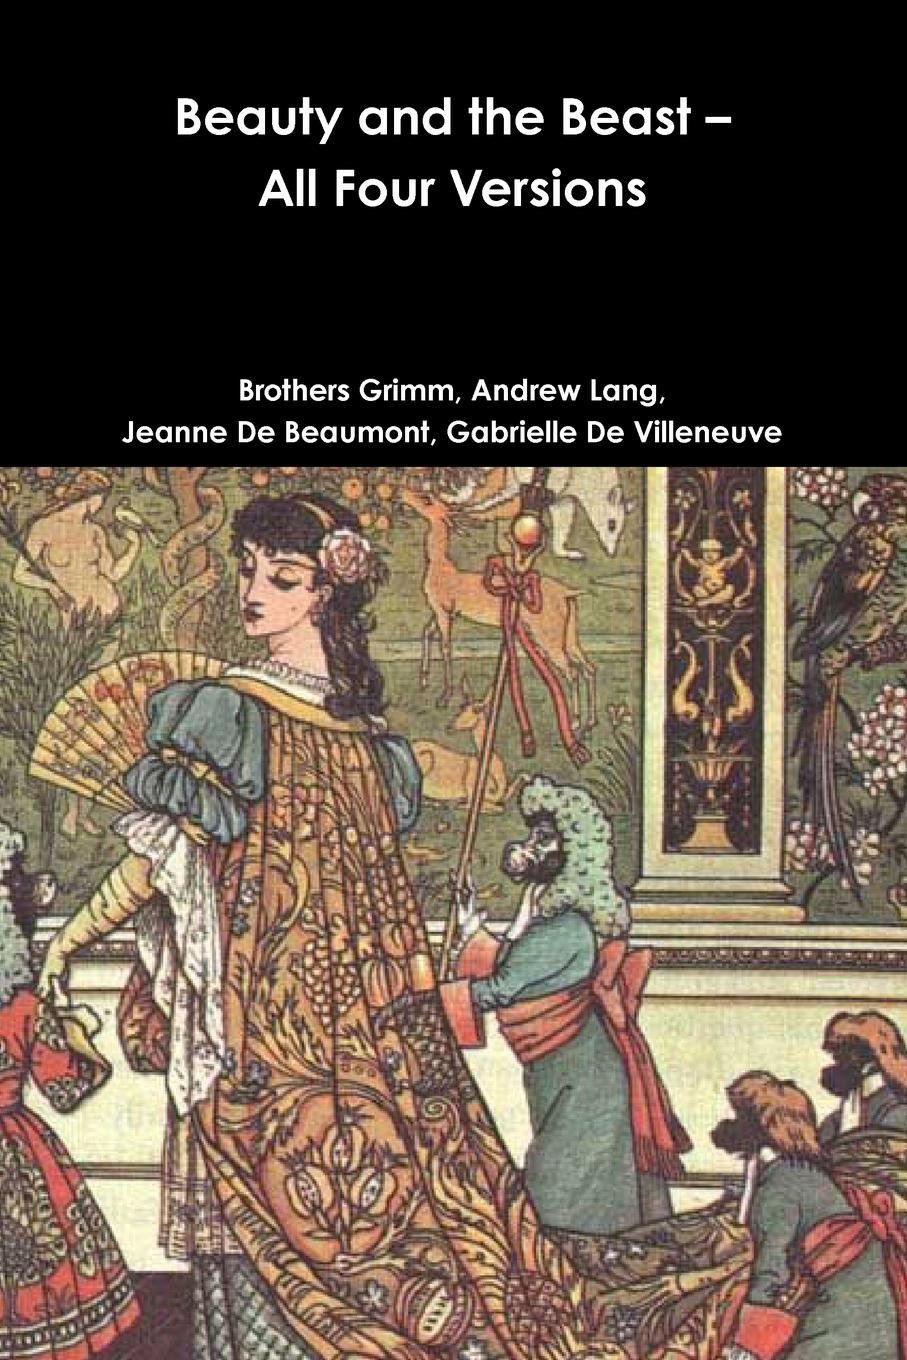 Brothers Grimm, Andrew Lang, Jeanne De Beaumont Beauty and the Beast - All Four Versions the brothers grimm sleeping beauty teacher s edition